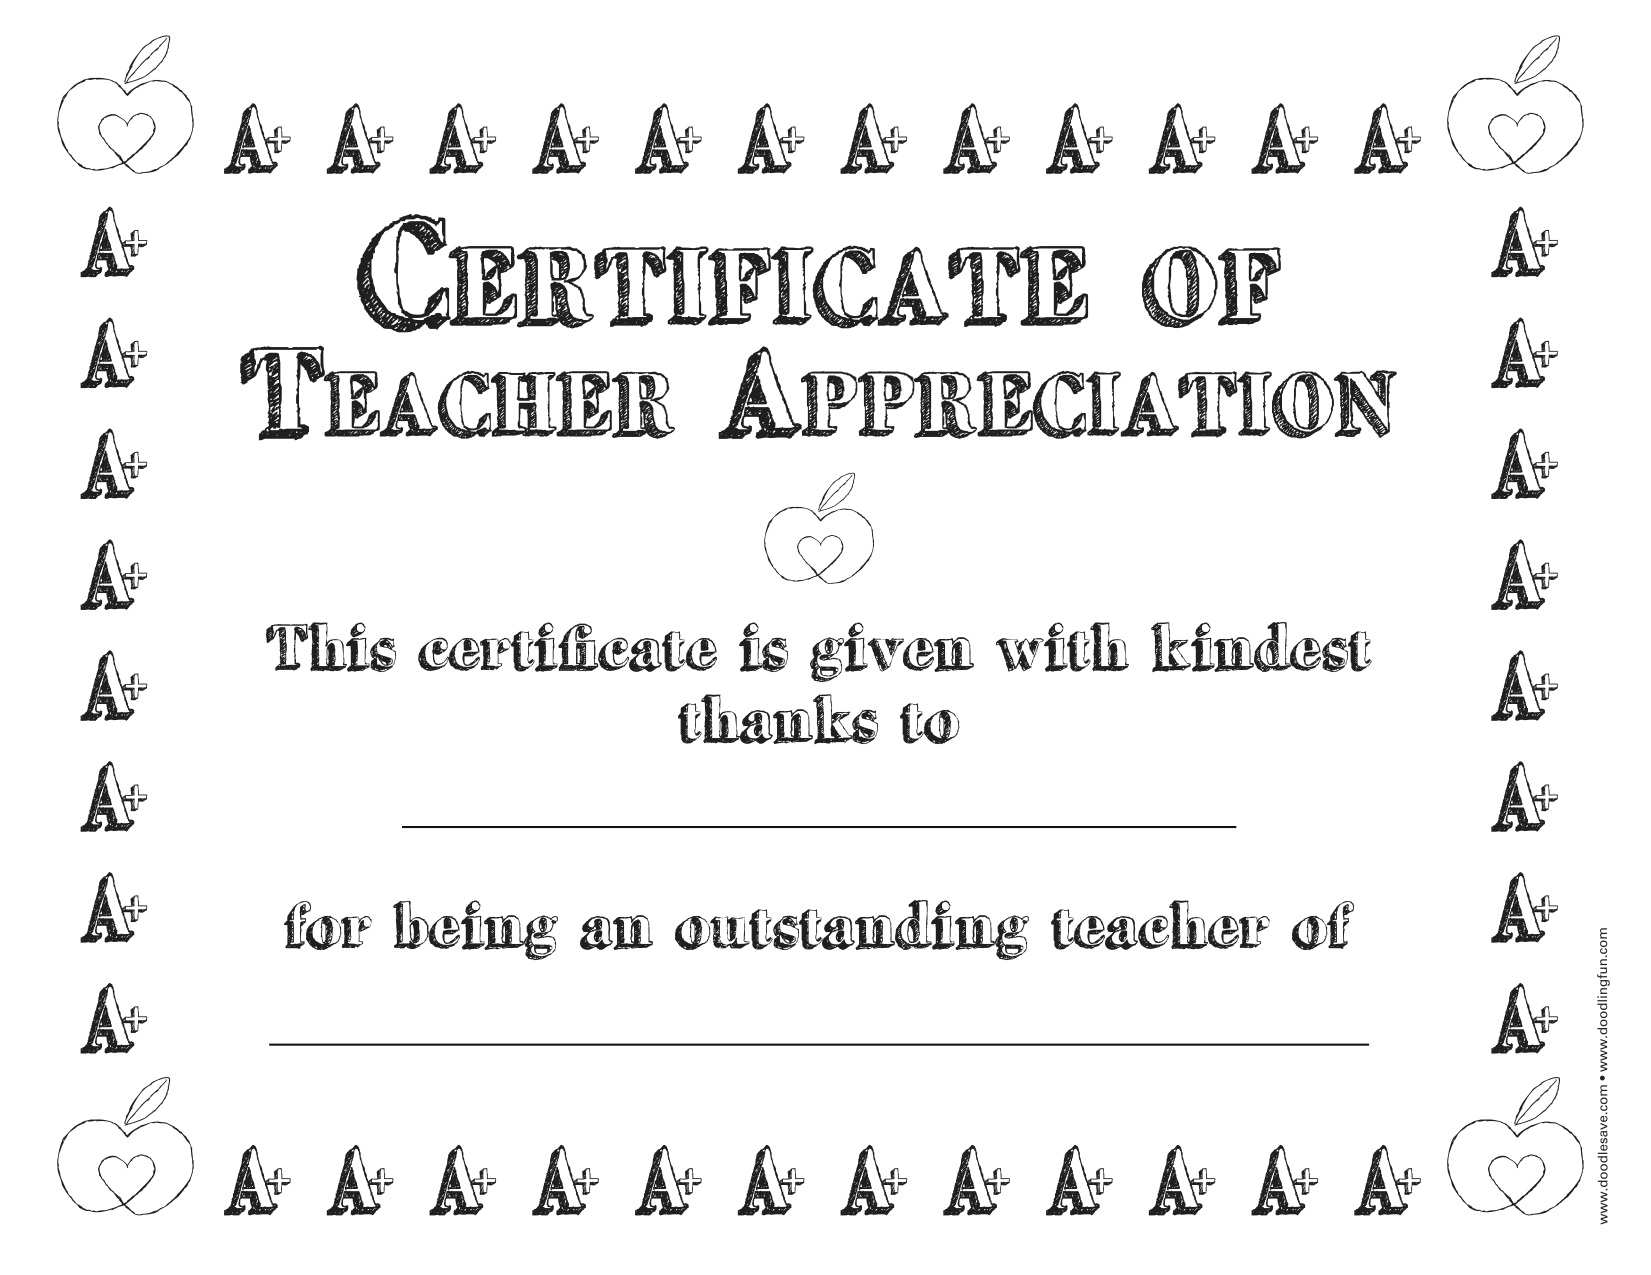 Best teacher certificate coloring pages murderthestout for Best teacher coloring pages